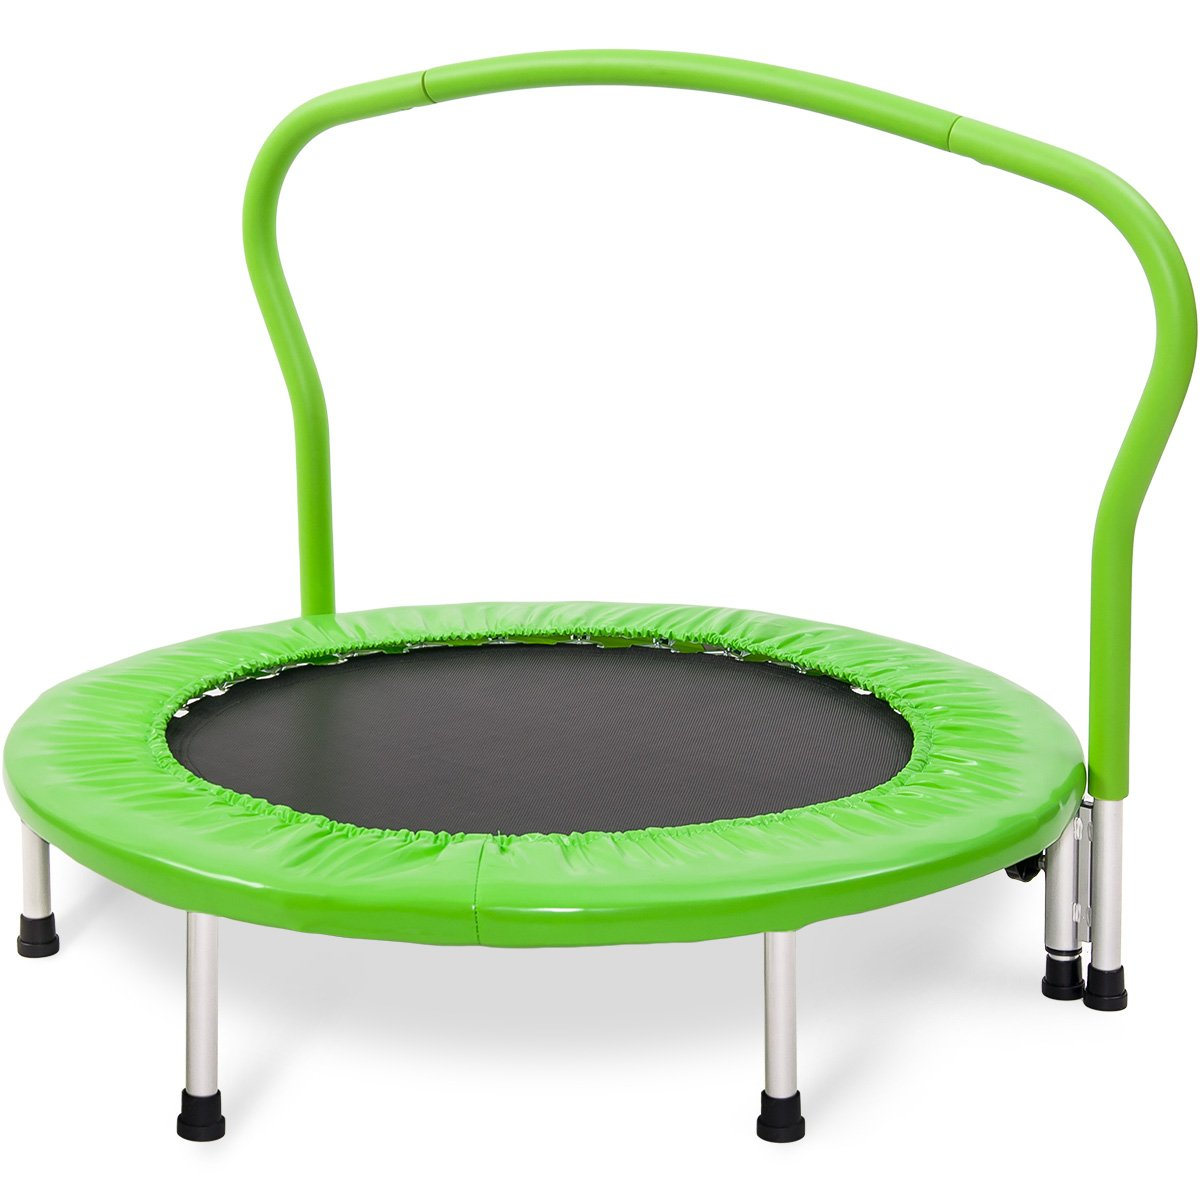 Merax 36'' Kid's Mini Exercise Trampoline Portable Trampoline with Handrail and Padded Cover (Green)